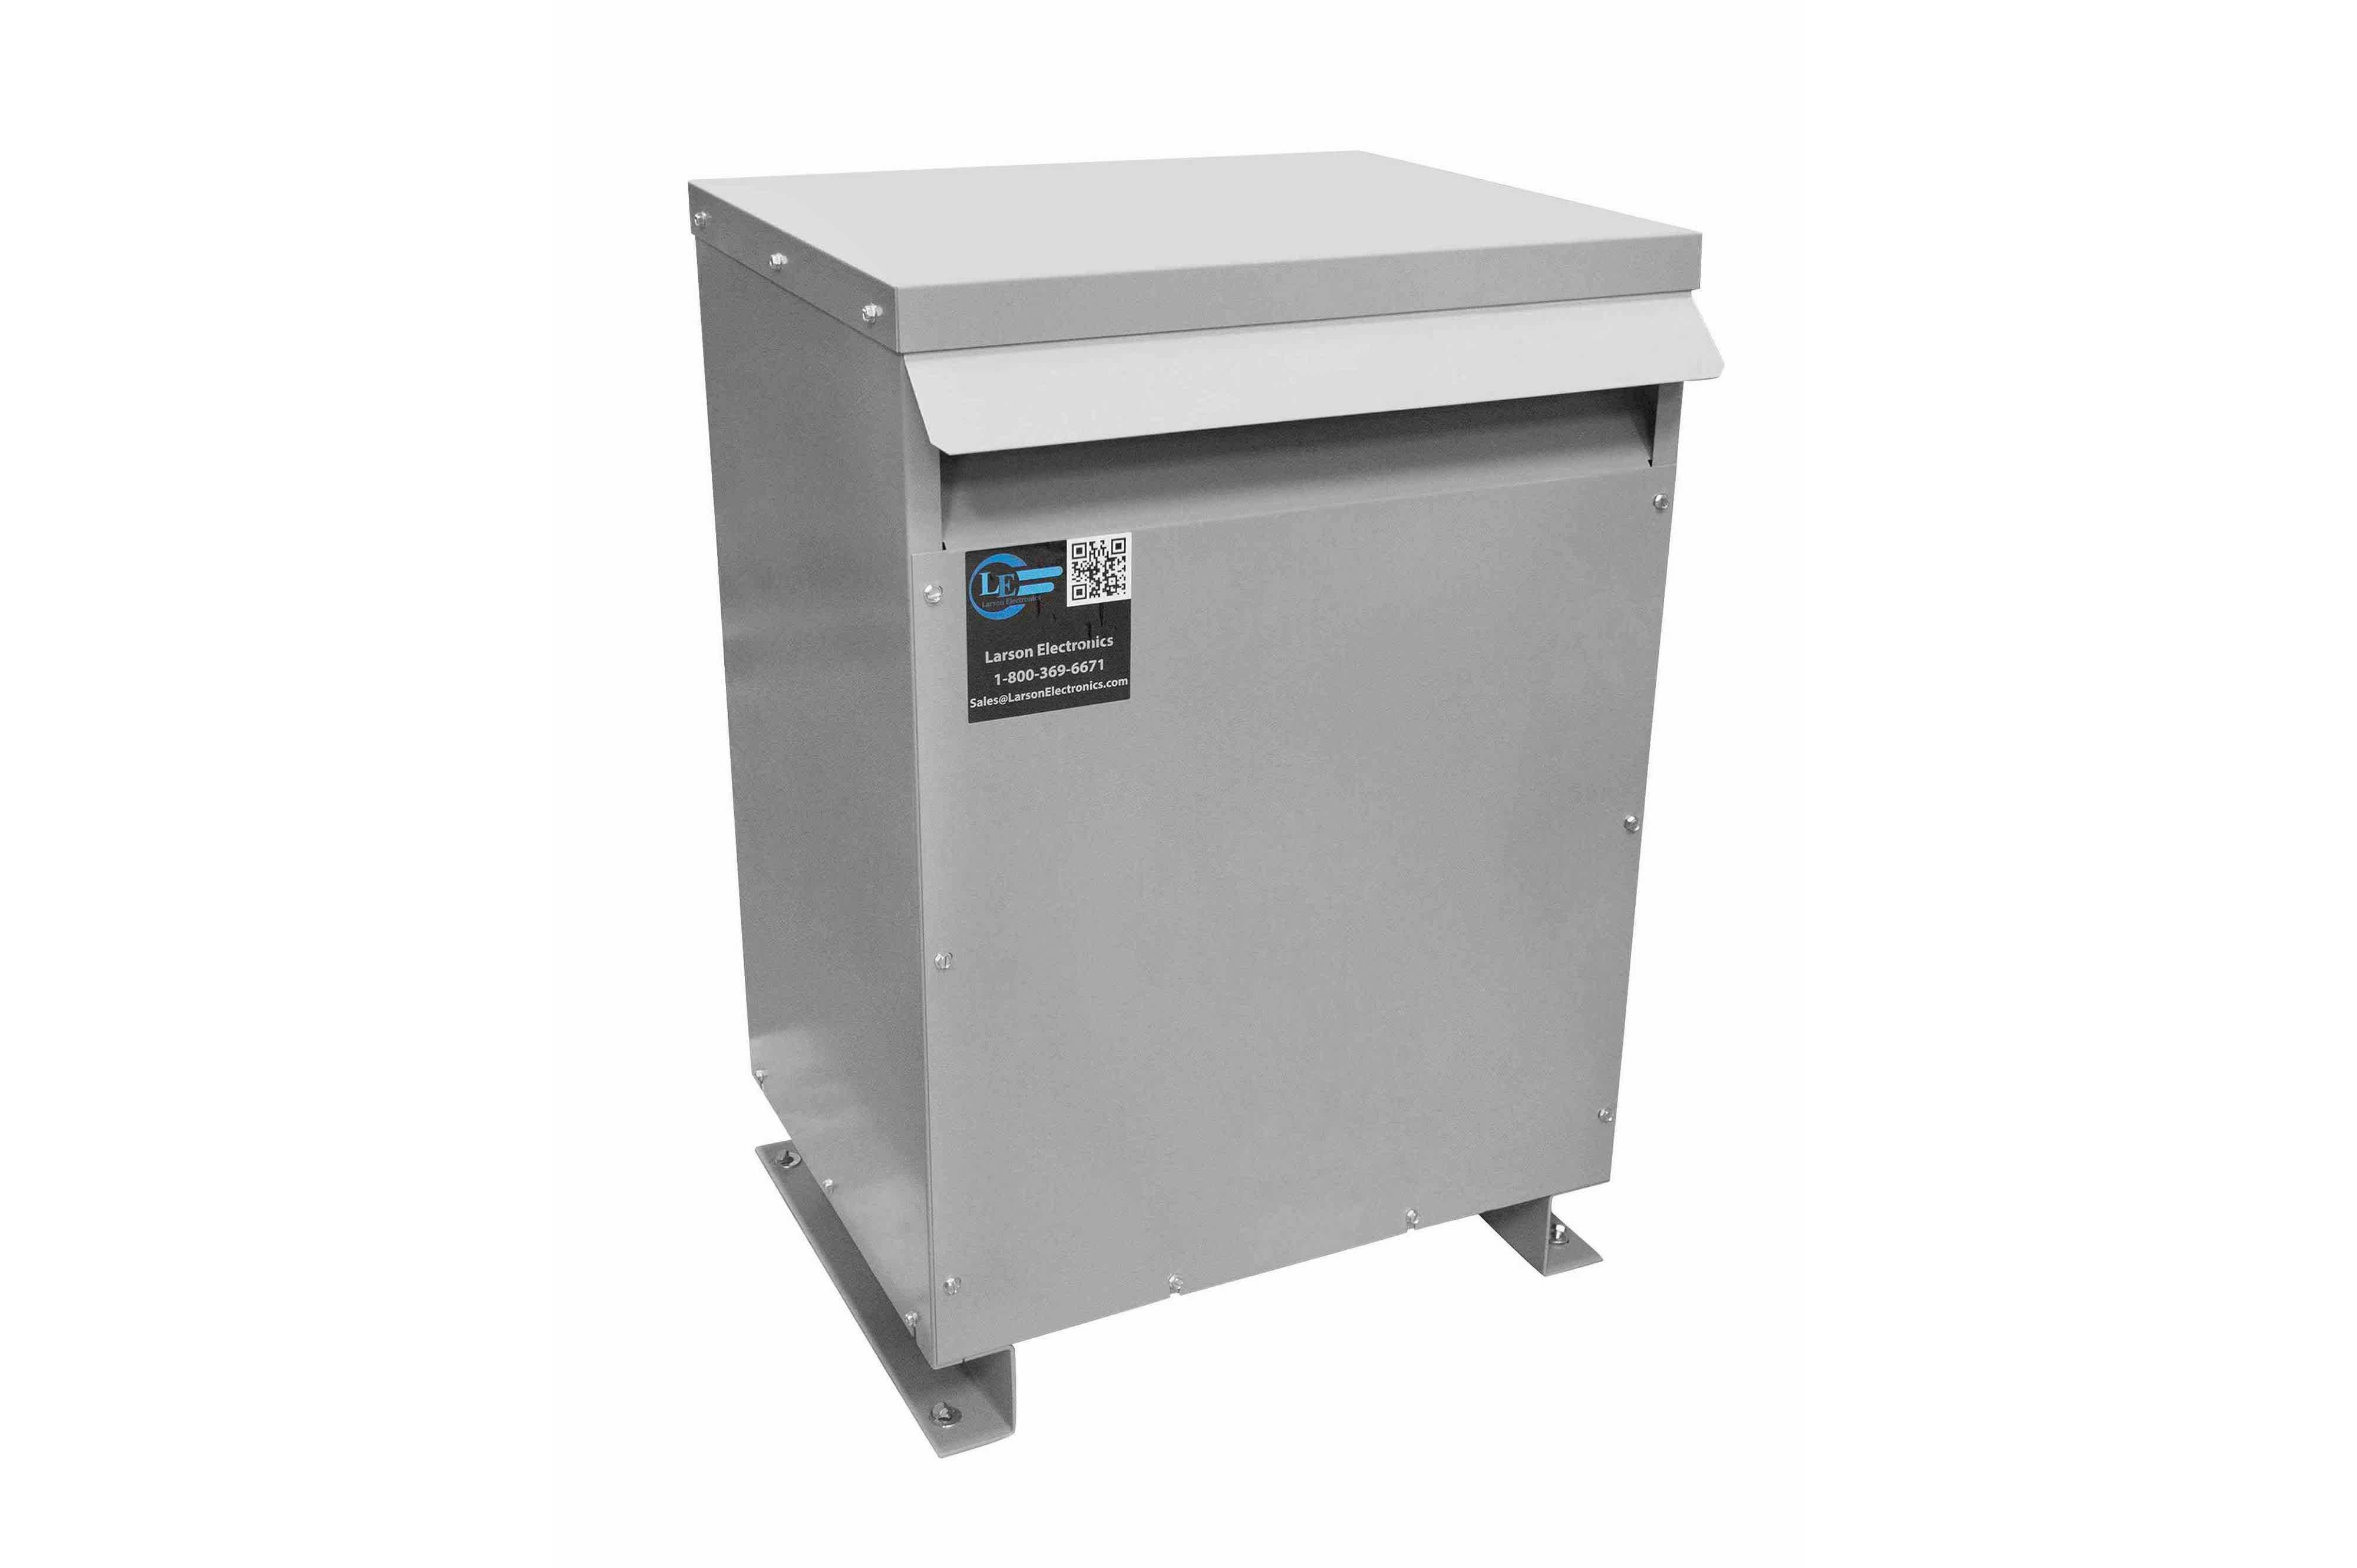 12 kVA 3PH DOE Transformer, 460V Delta Primary, 380Y/220 Wye-N Secondary, N3R, Ventilated, 60 Hz